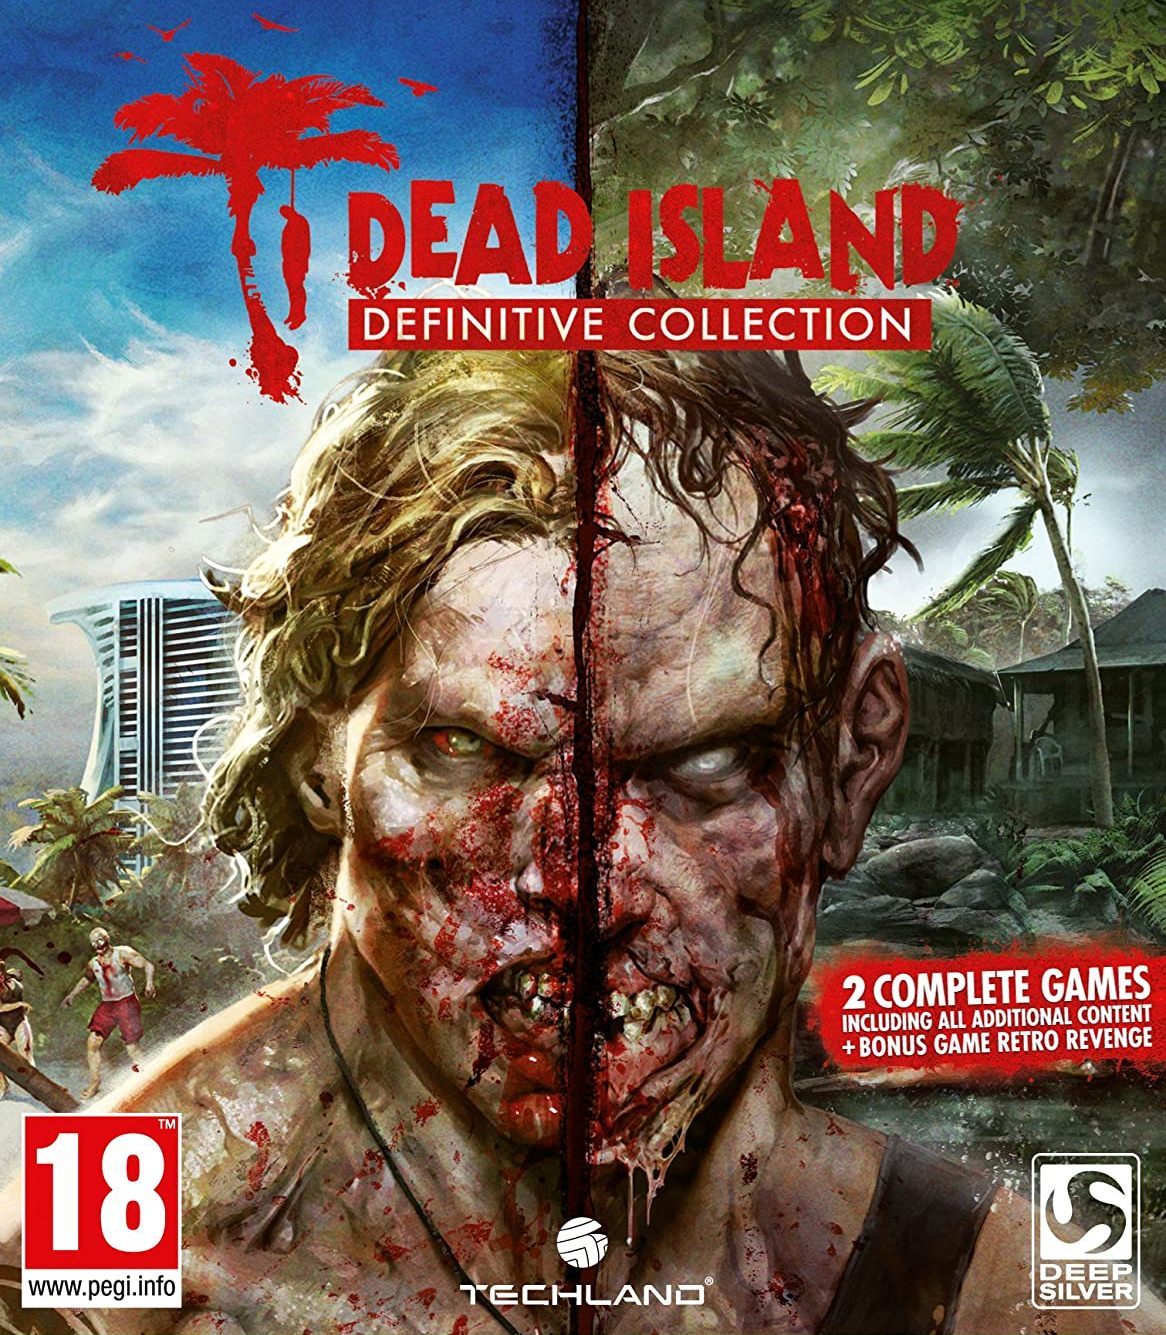 DEAD ISLAND: DEFINITIVE EDITION - PC